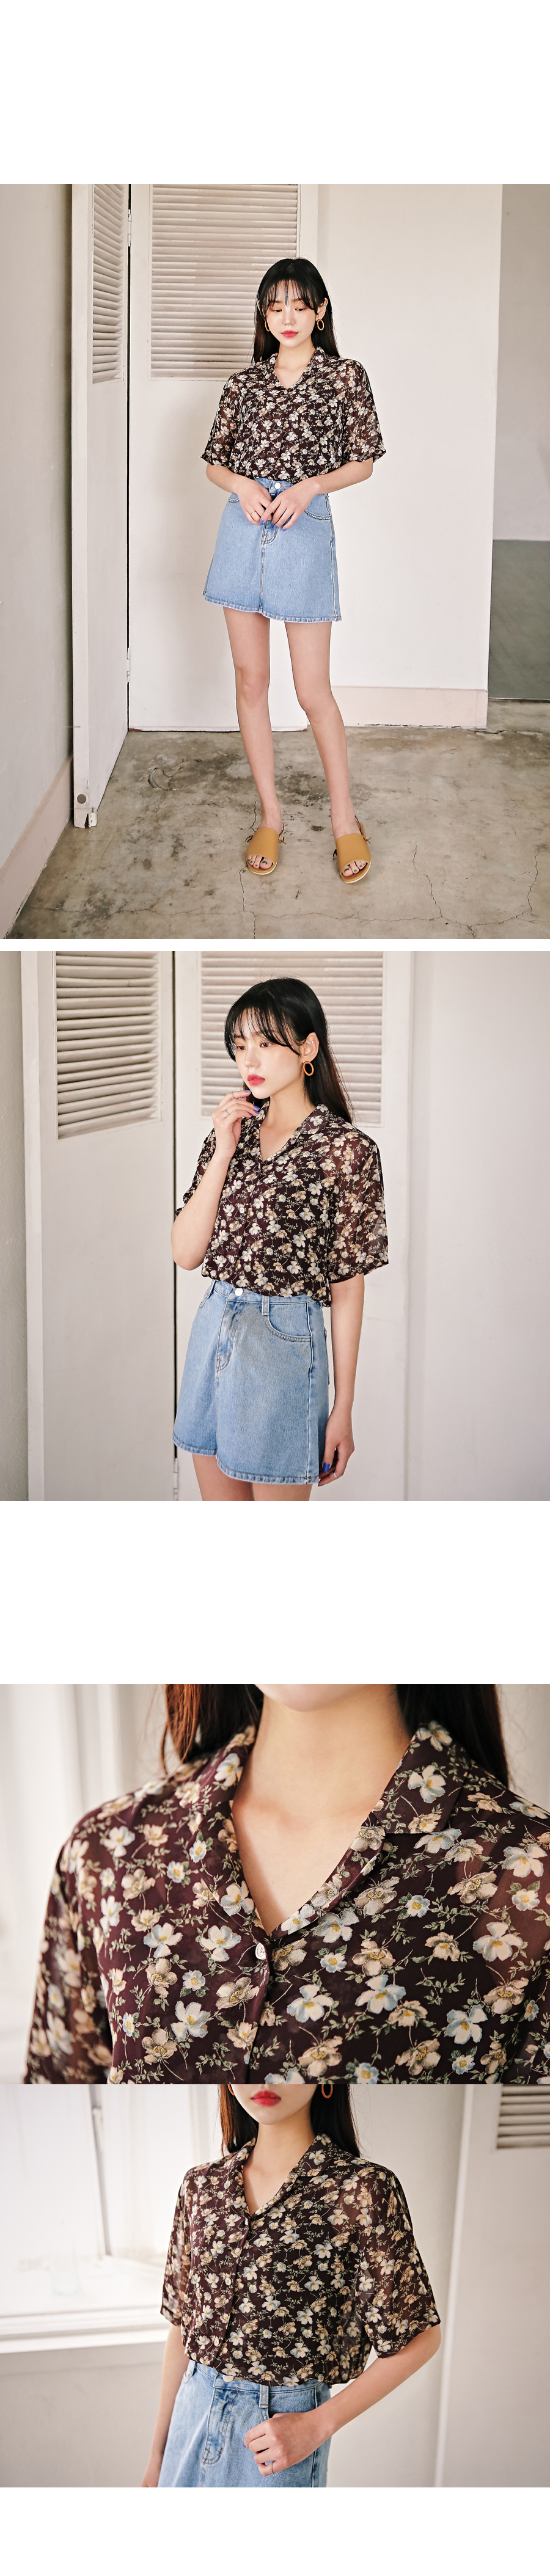 Butter Pool Chiffon Shirt